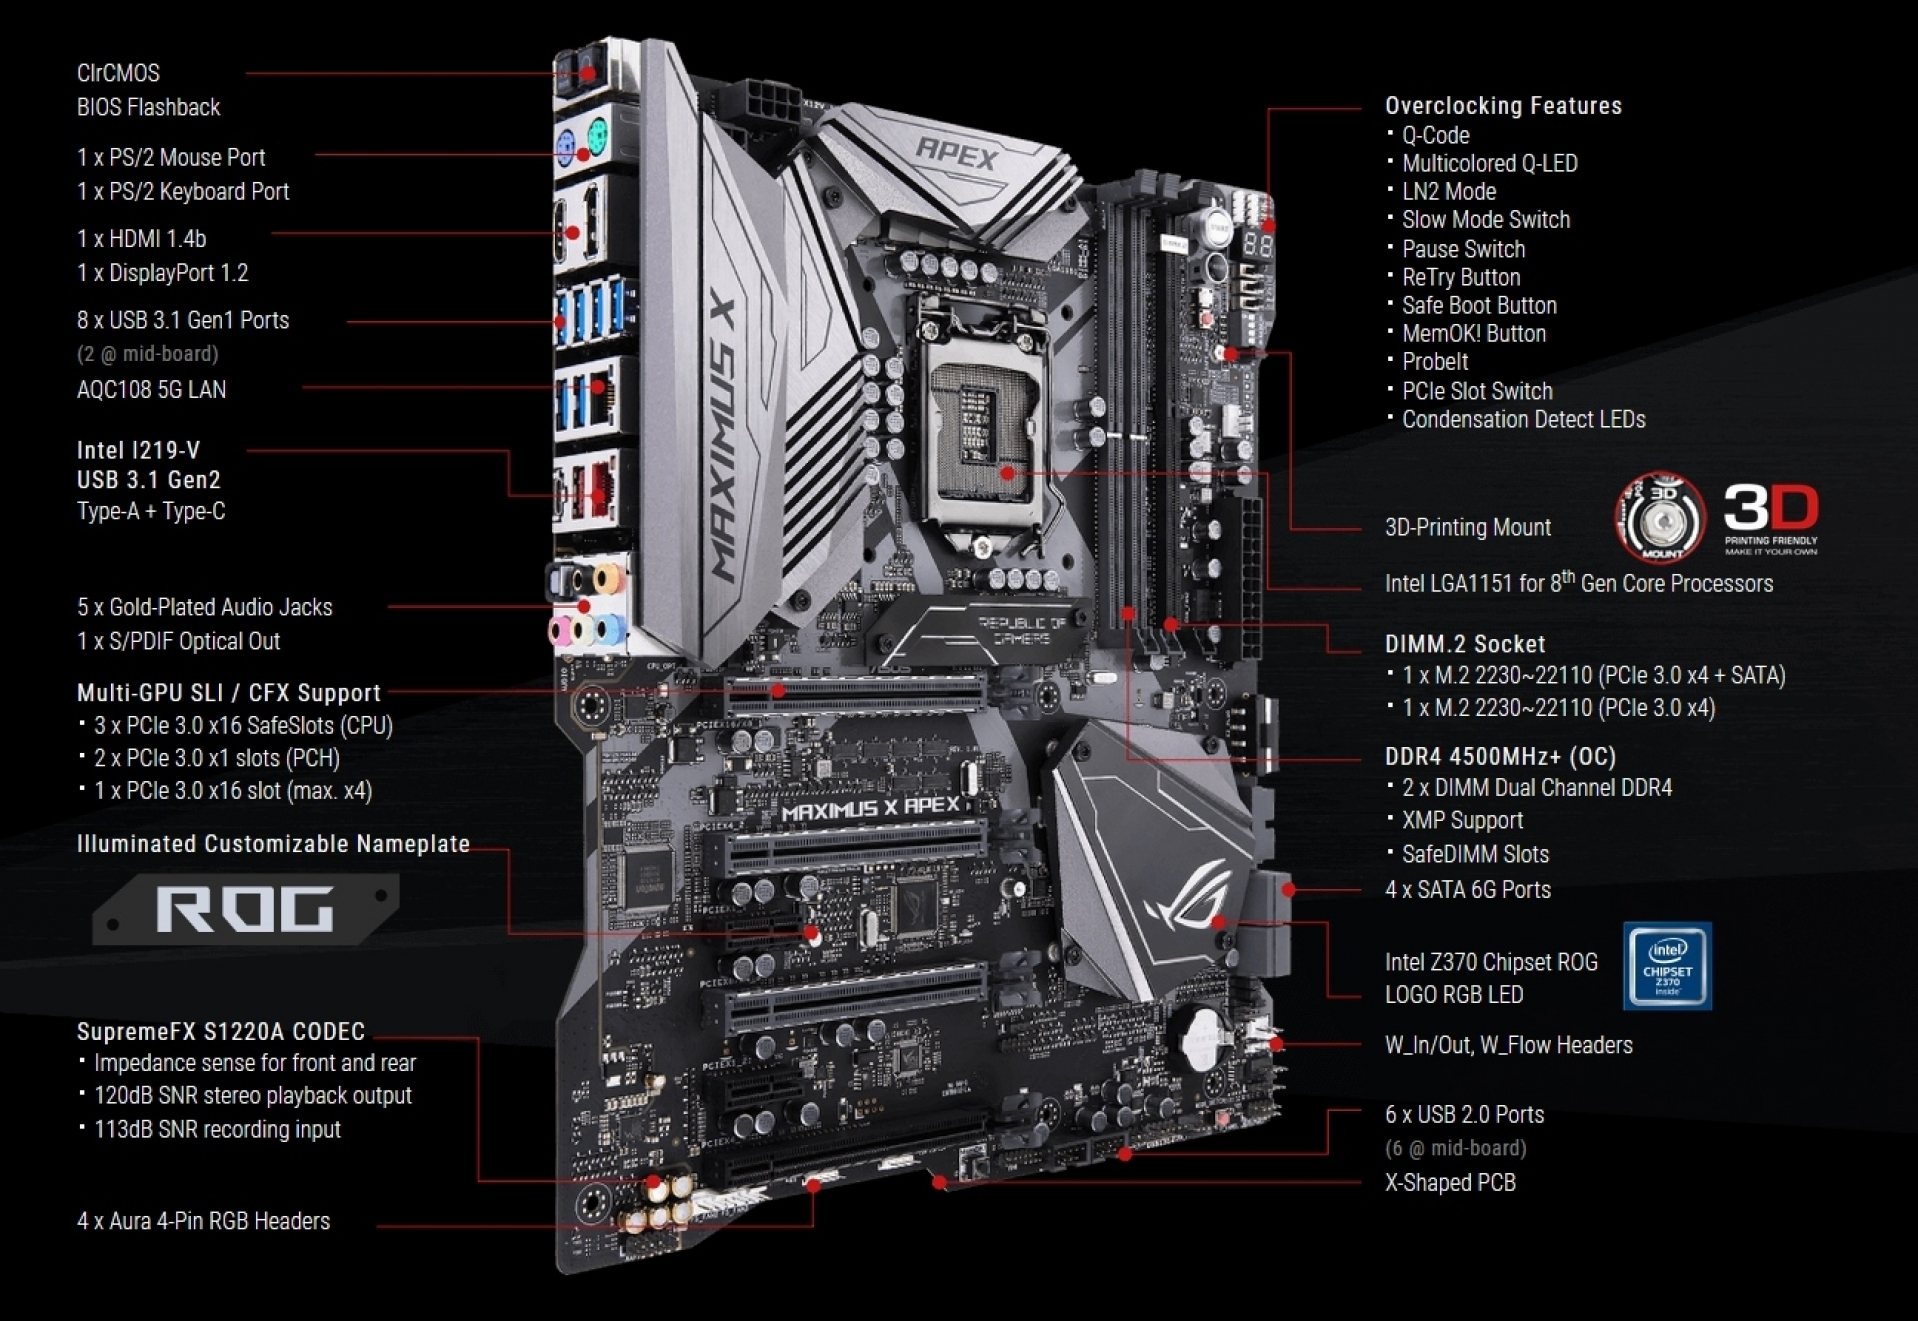 ASUS ROG Maximus X Apex Z370 Motherboard Specifications